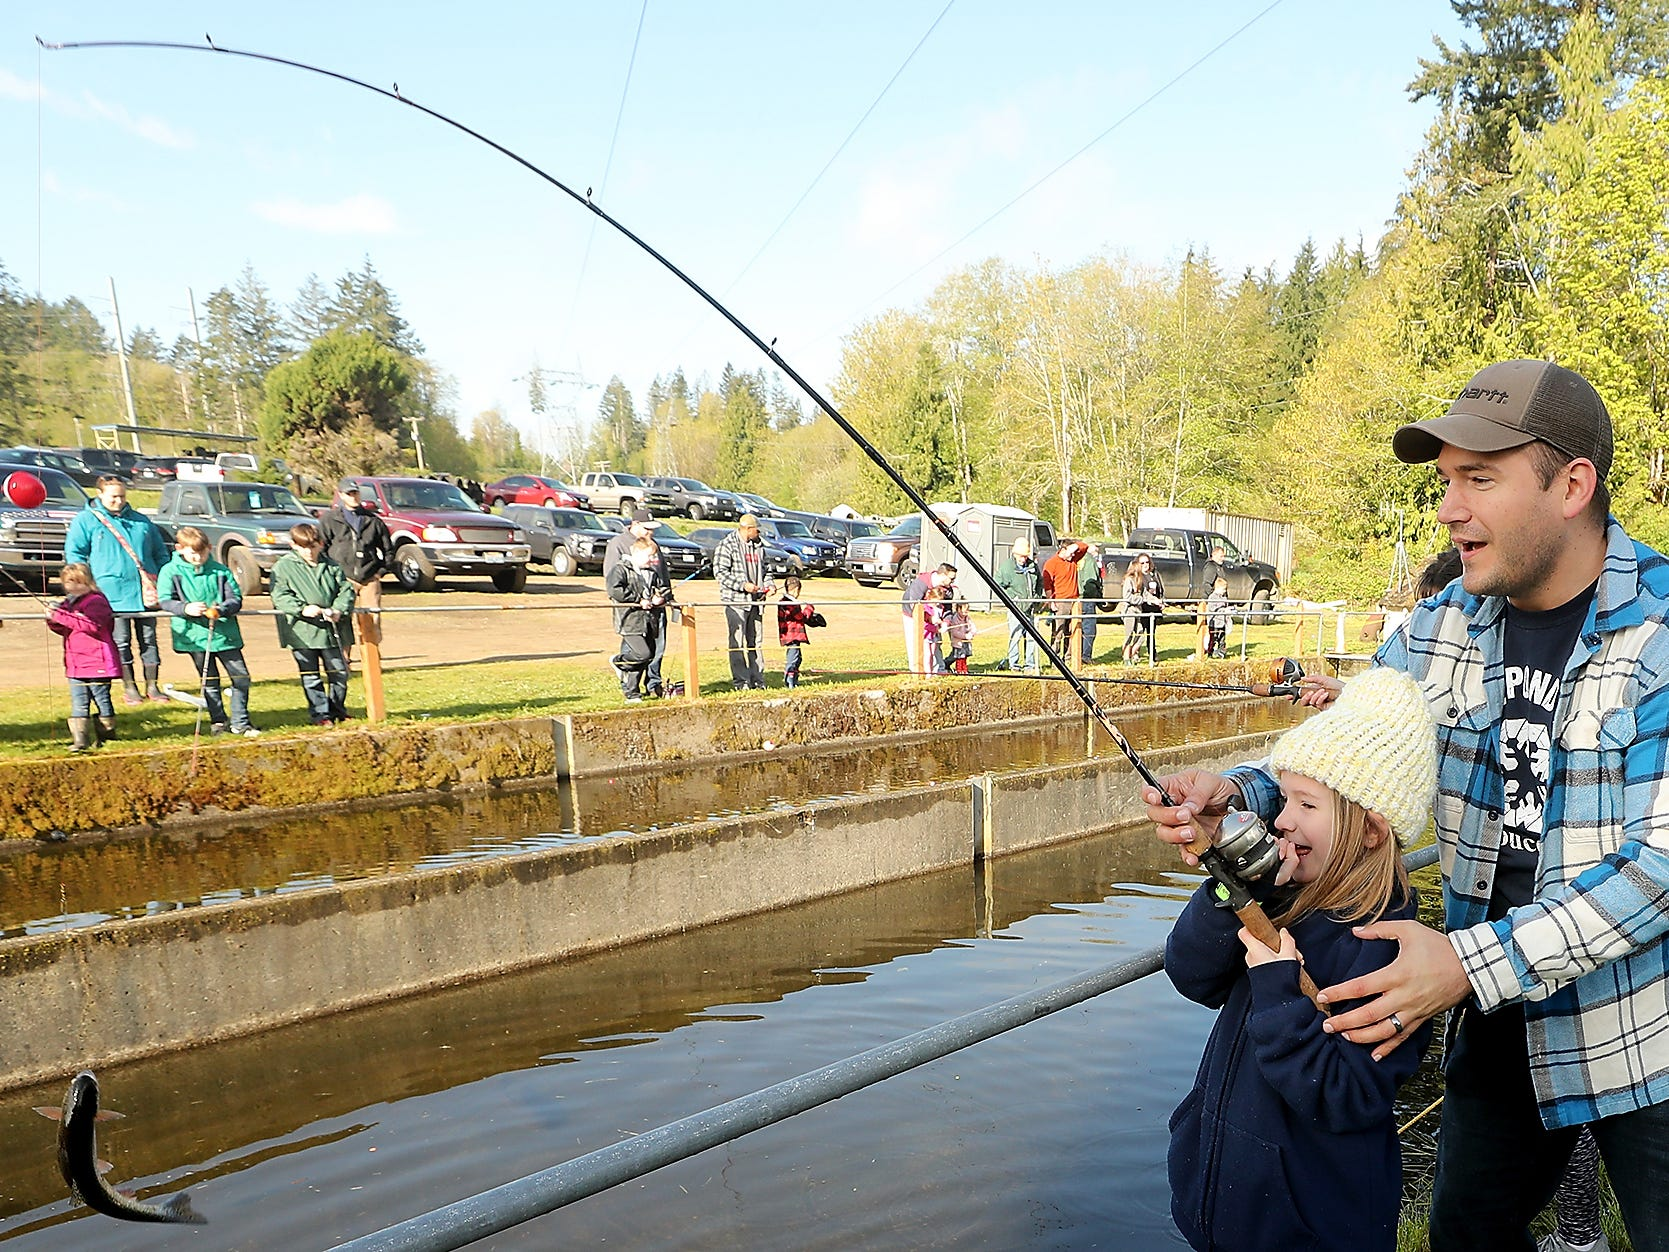 Brett Palmer helps his daughter Stella, 6, land her catch during the Kids Fishing Party at Jarstad Park in Gorst on Saturday, April 27, 2019.